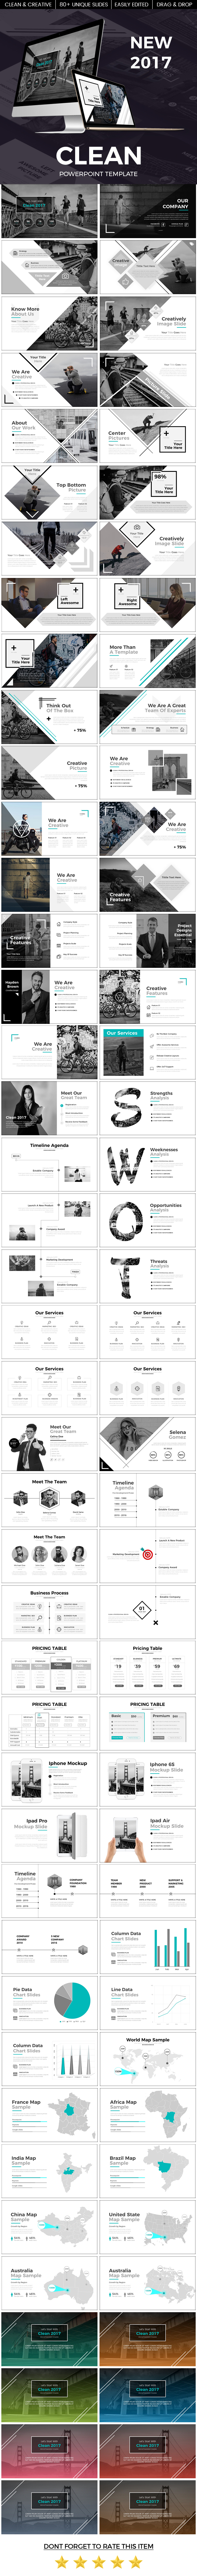 Desktop Powerpoint presentation (PowerPoint Templates)